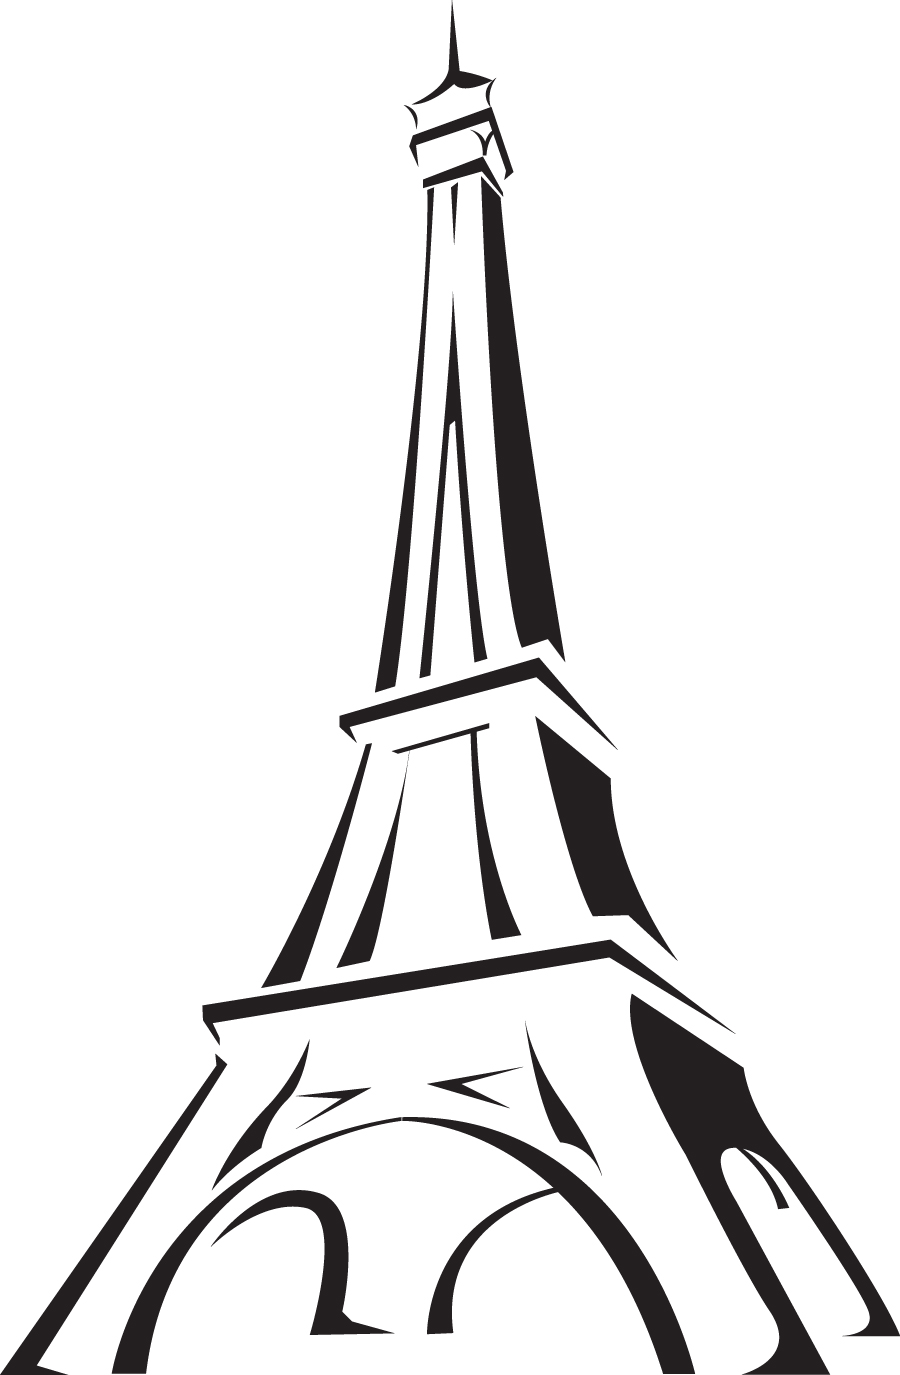 900x1375 Eiffel Tower Line Drawing Clipart Free Clip Art Images Image 6 2